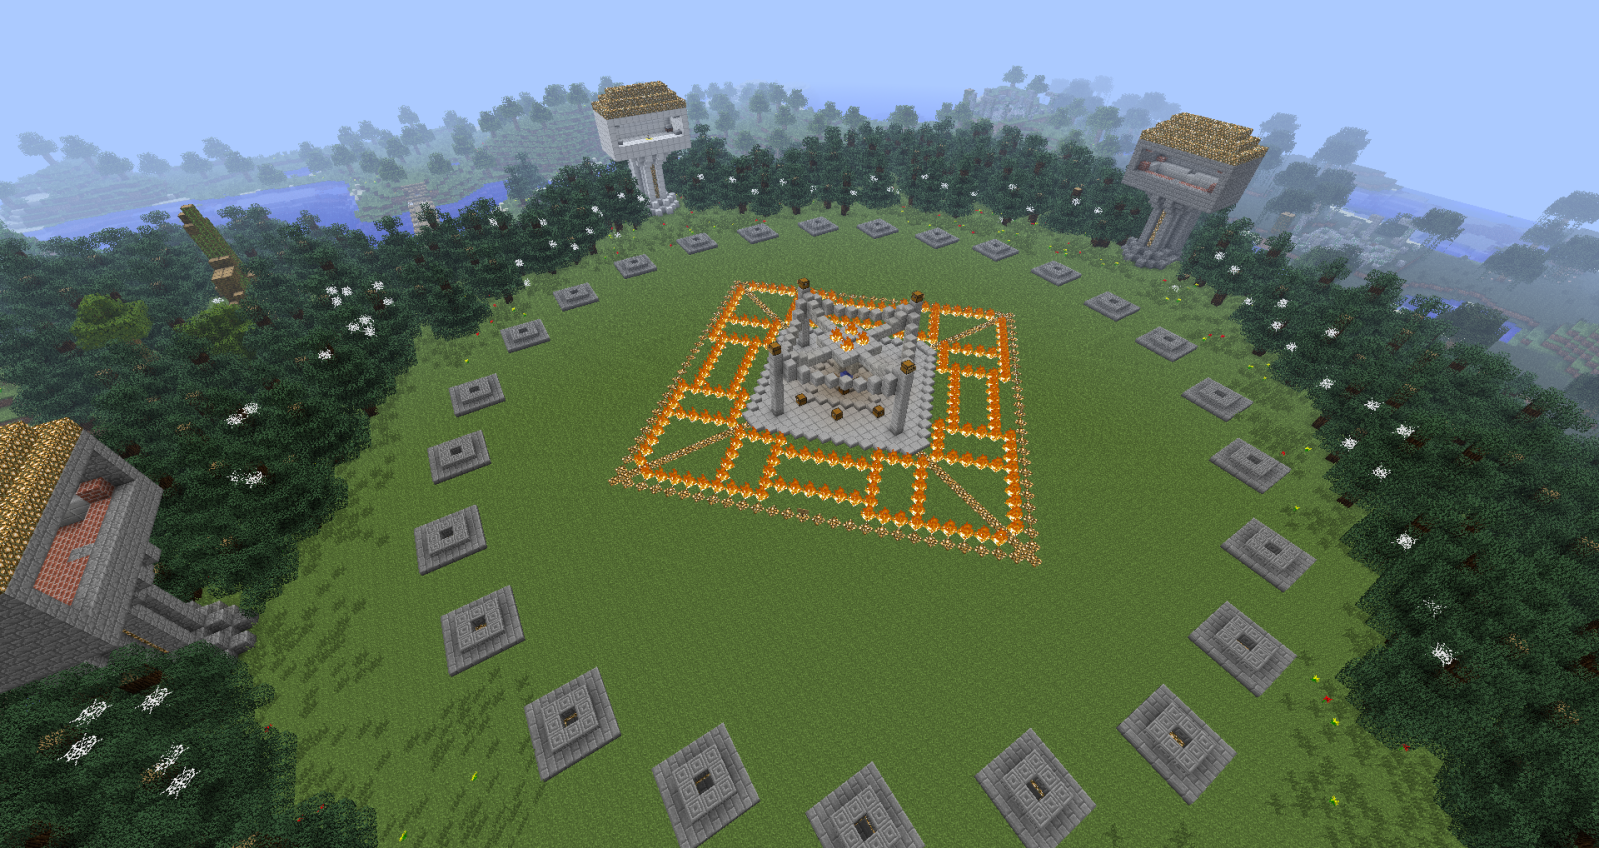 Minecraft Pc Hunger Games Map Layout on Cool Things To Build A City In Minecraft